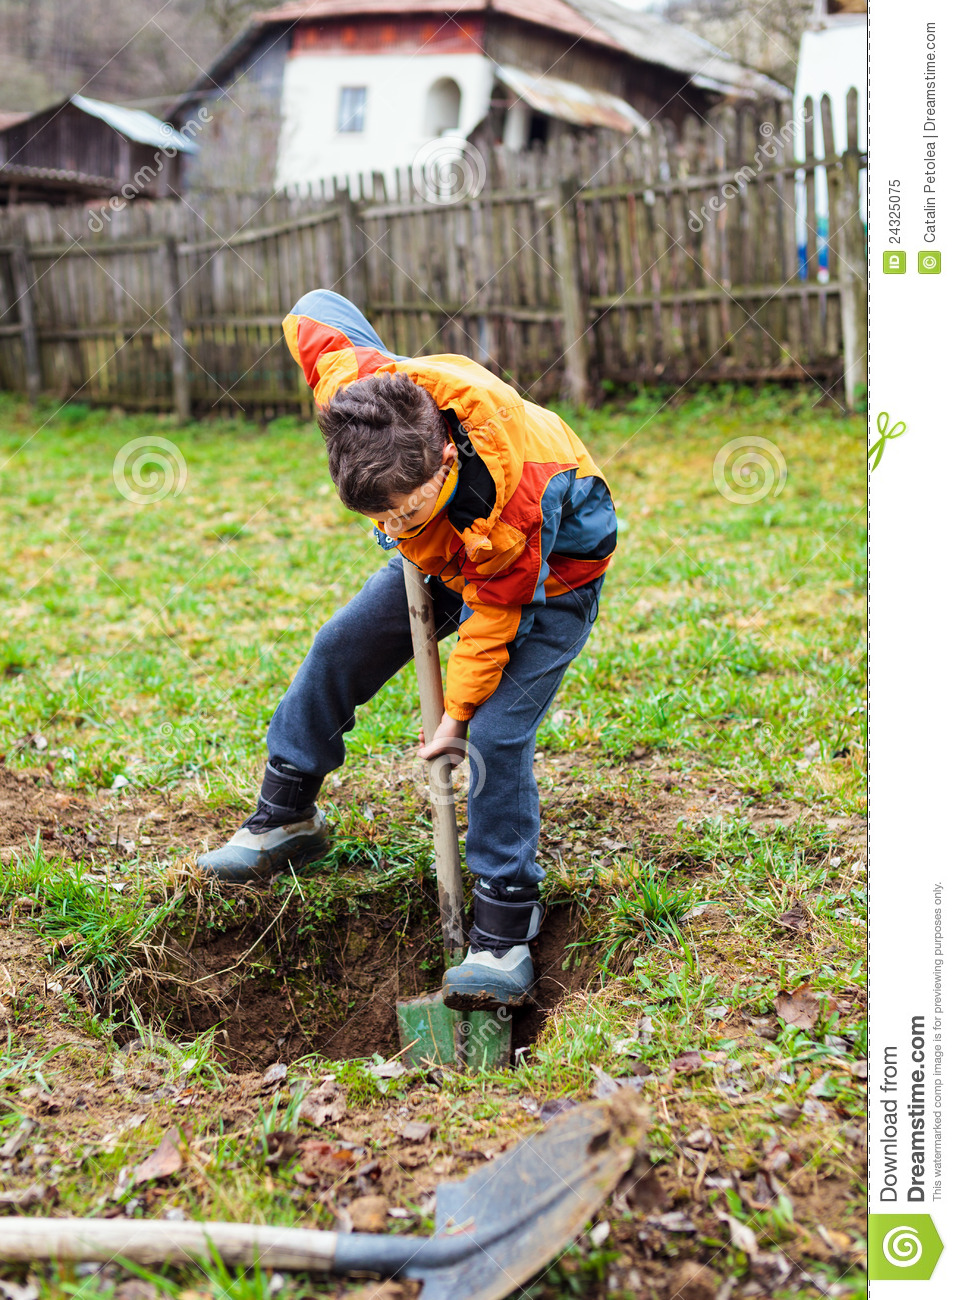 Boy digging in field royalty free stock photo for Digging ground dream meaning